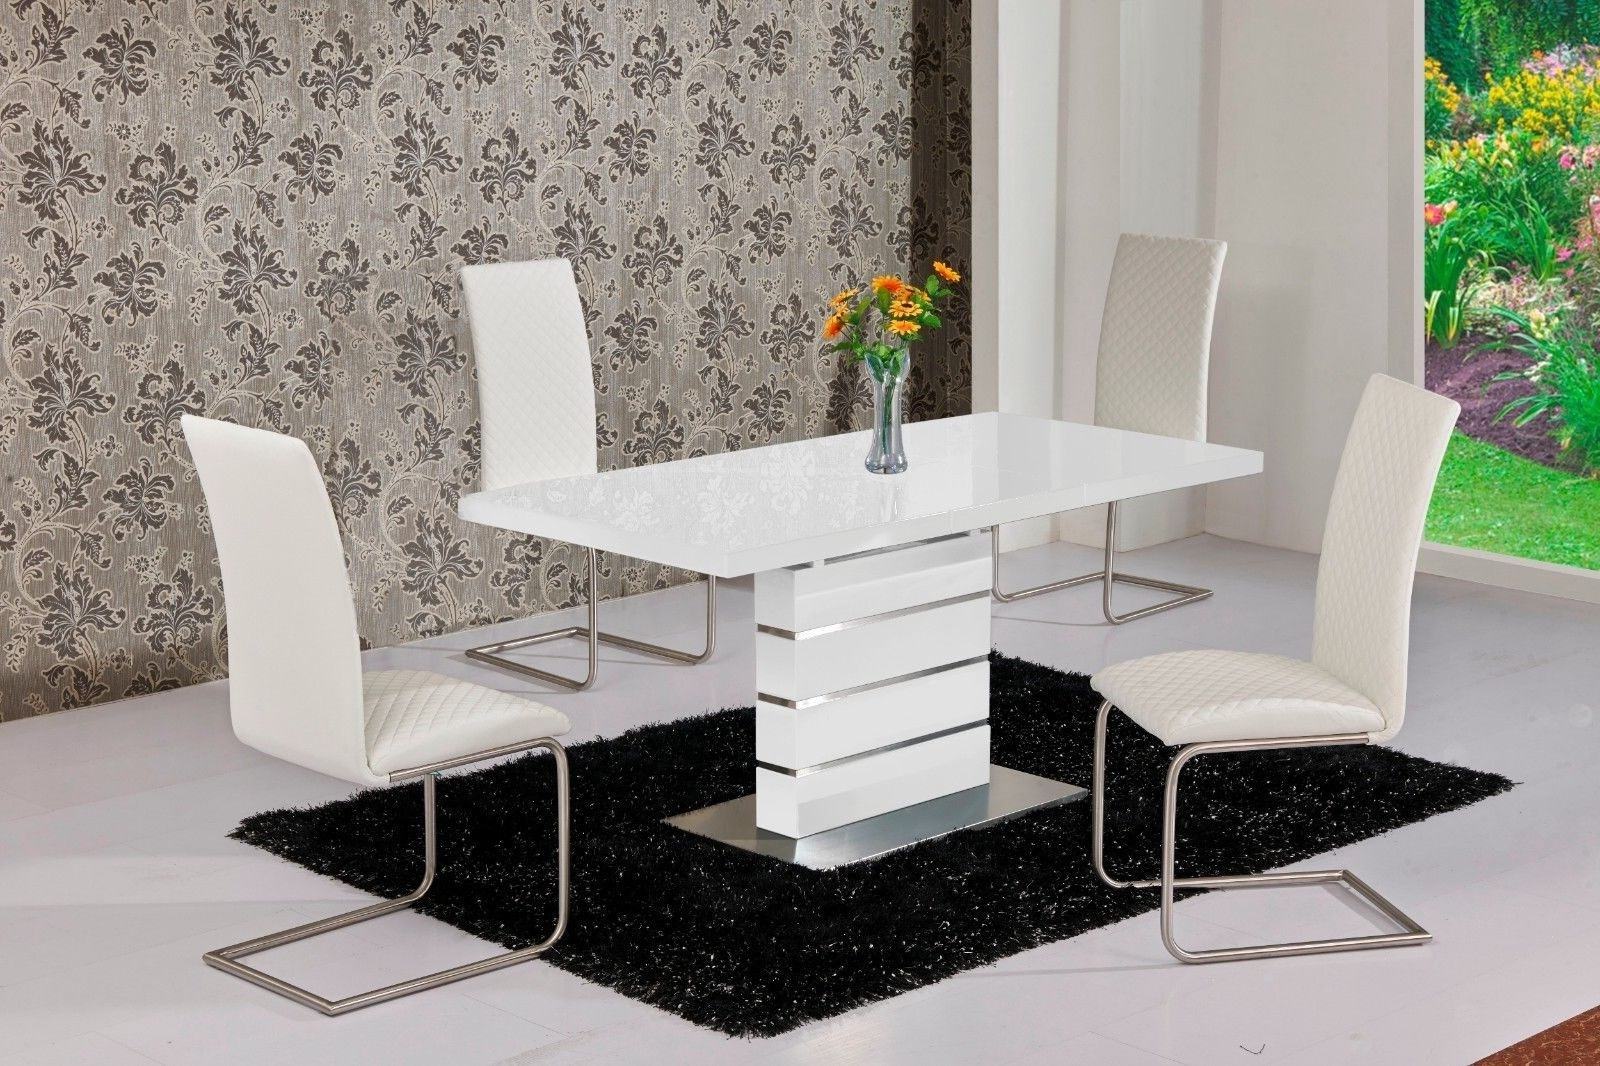 Mace High Gloss Extending 120 160 Dining Table & Chair Set – White Throughout 2018 Black High Gloss Dining Tables (Gallery 23 of 25)